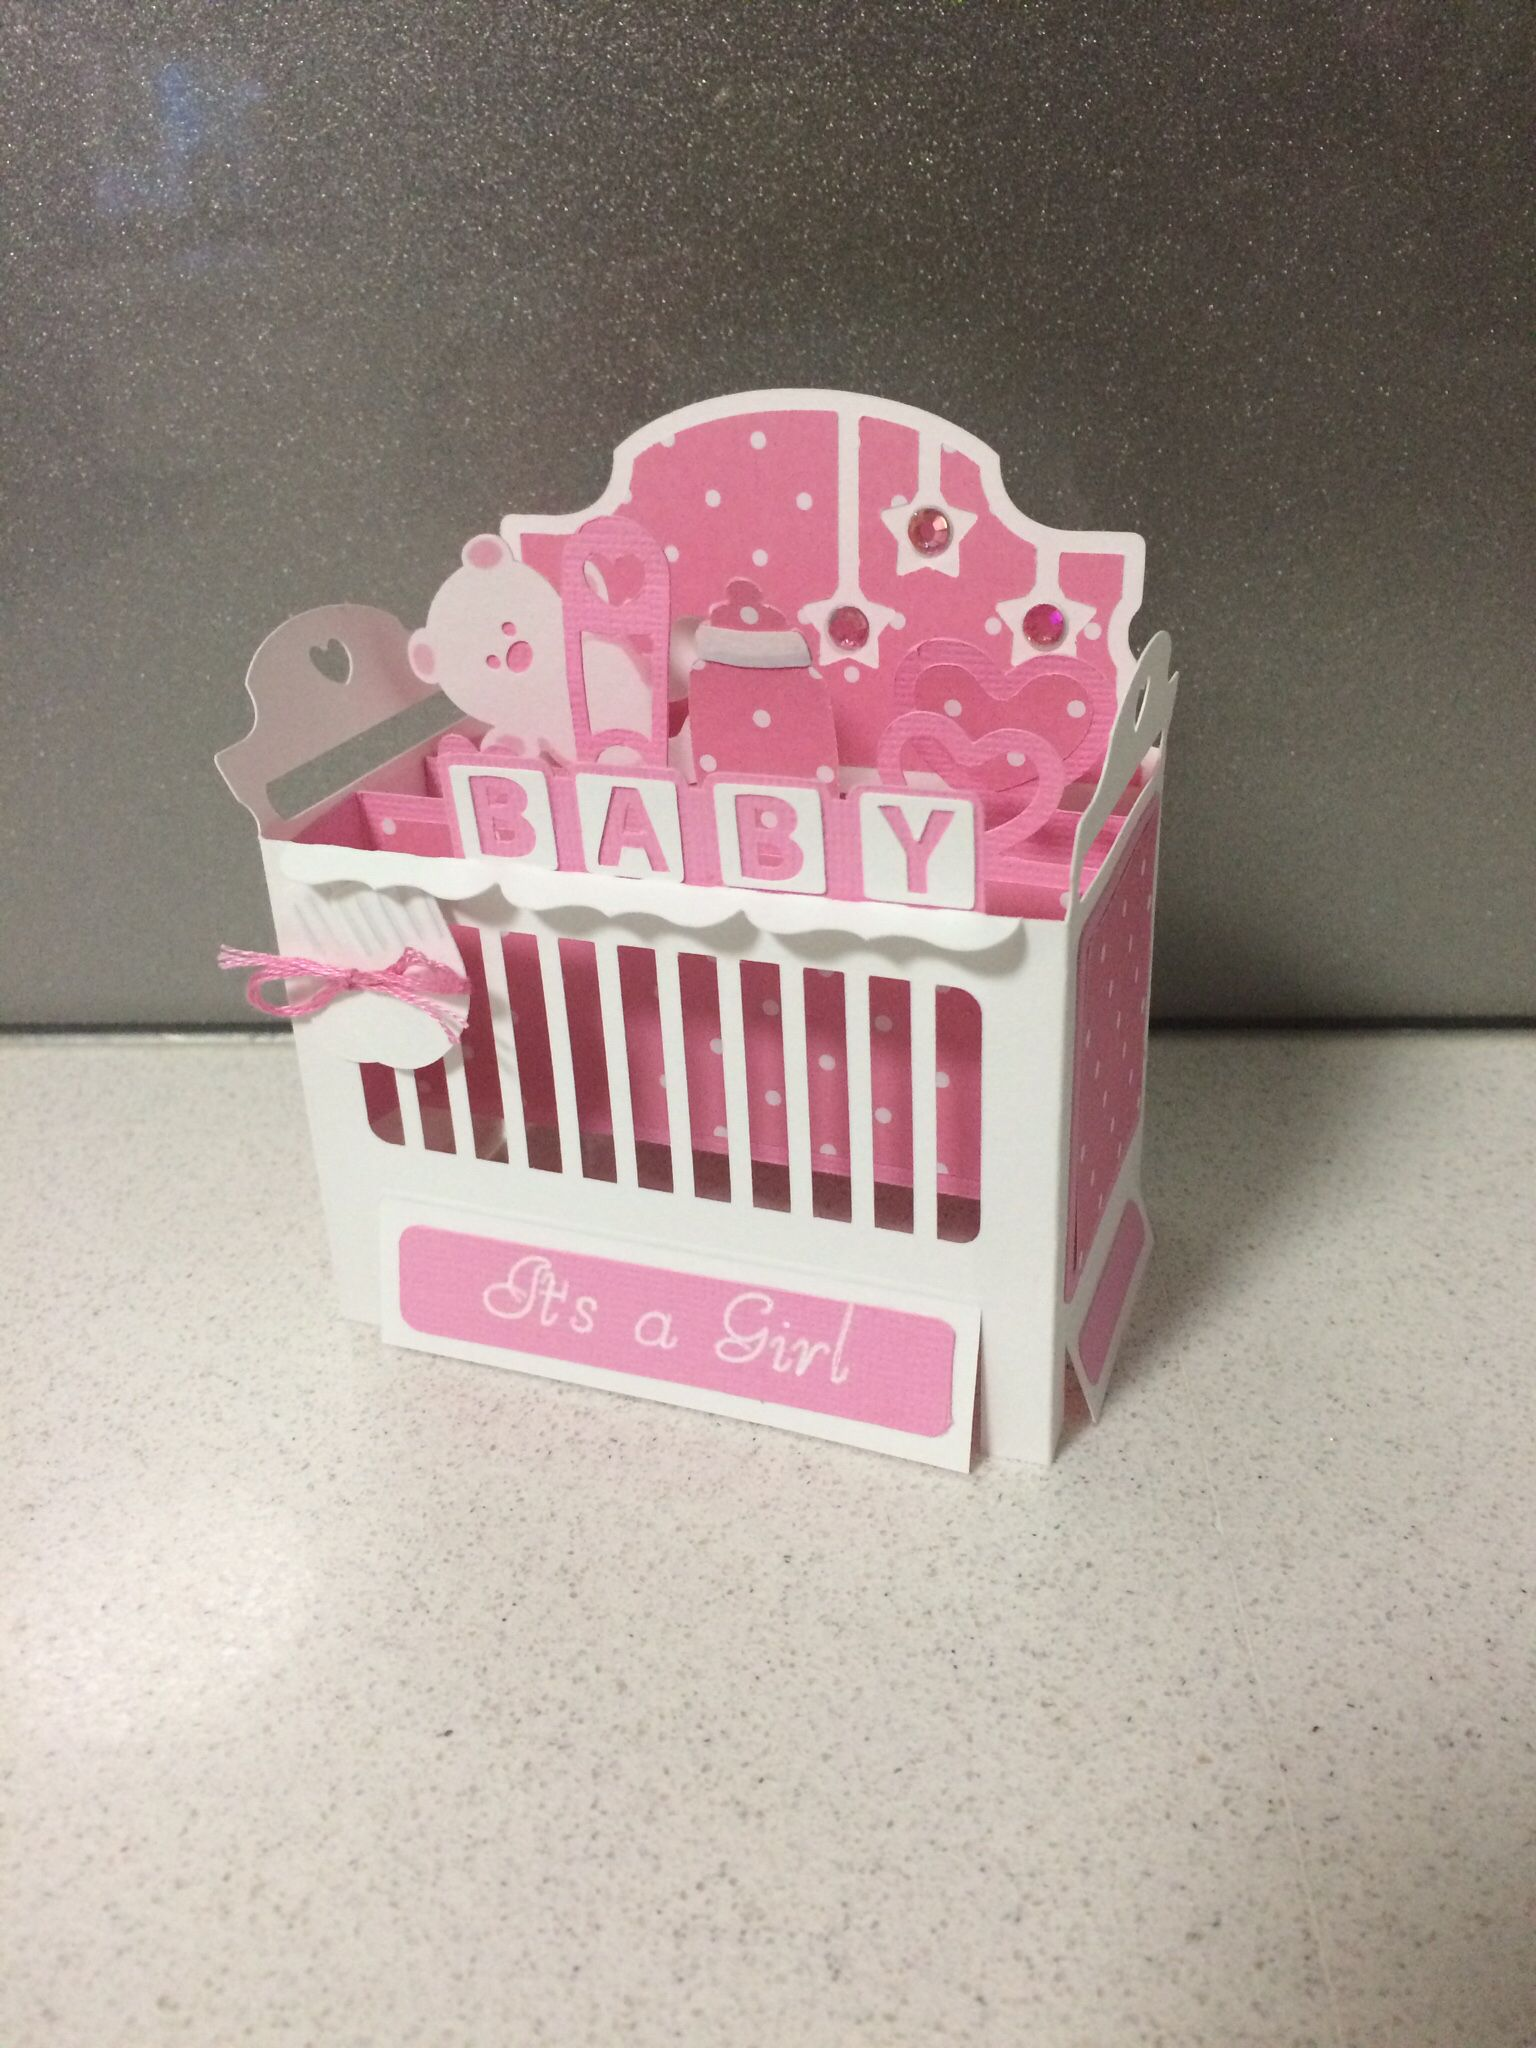 Baby Crib Cot Box Card Pattern From Svg Cuts Baby Pinterest